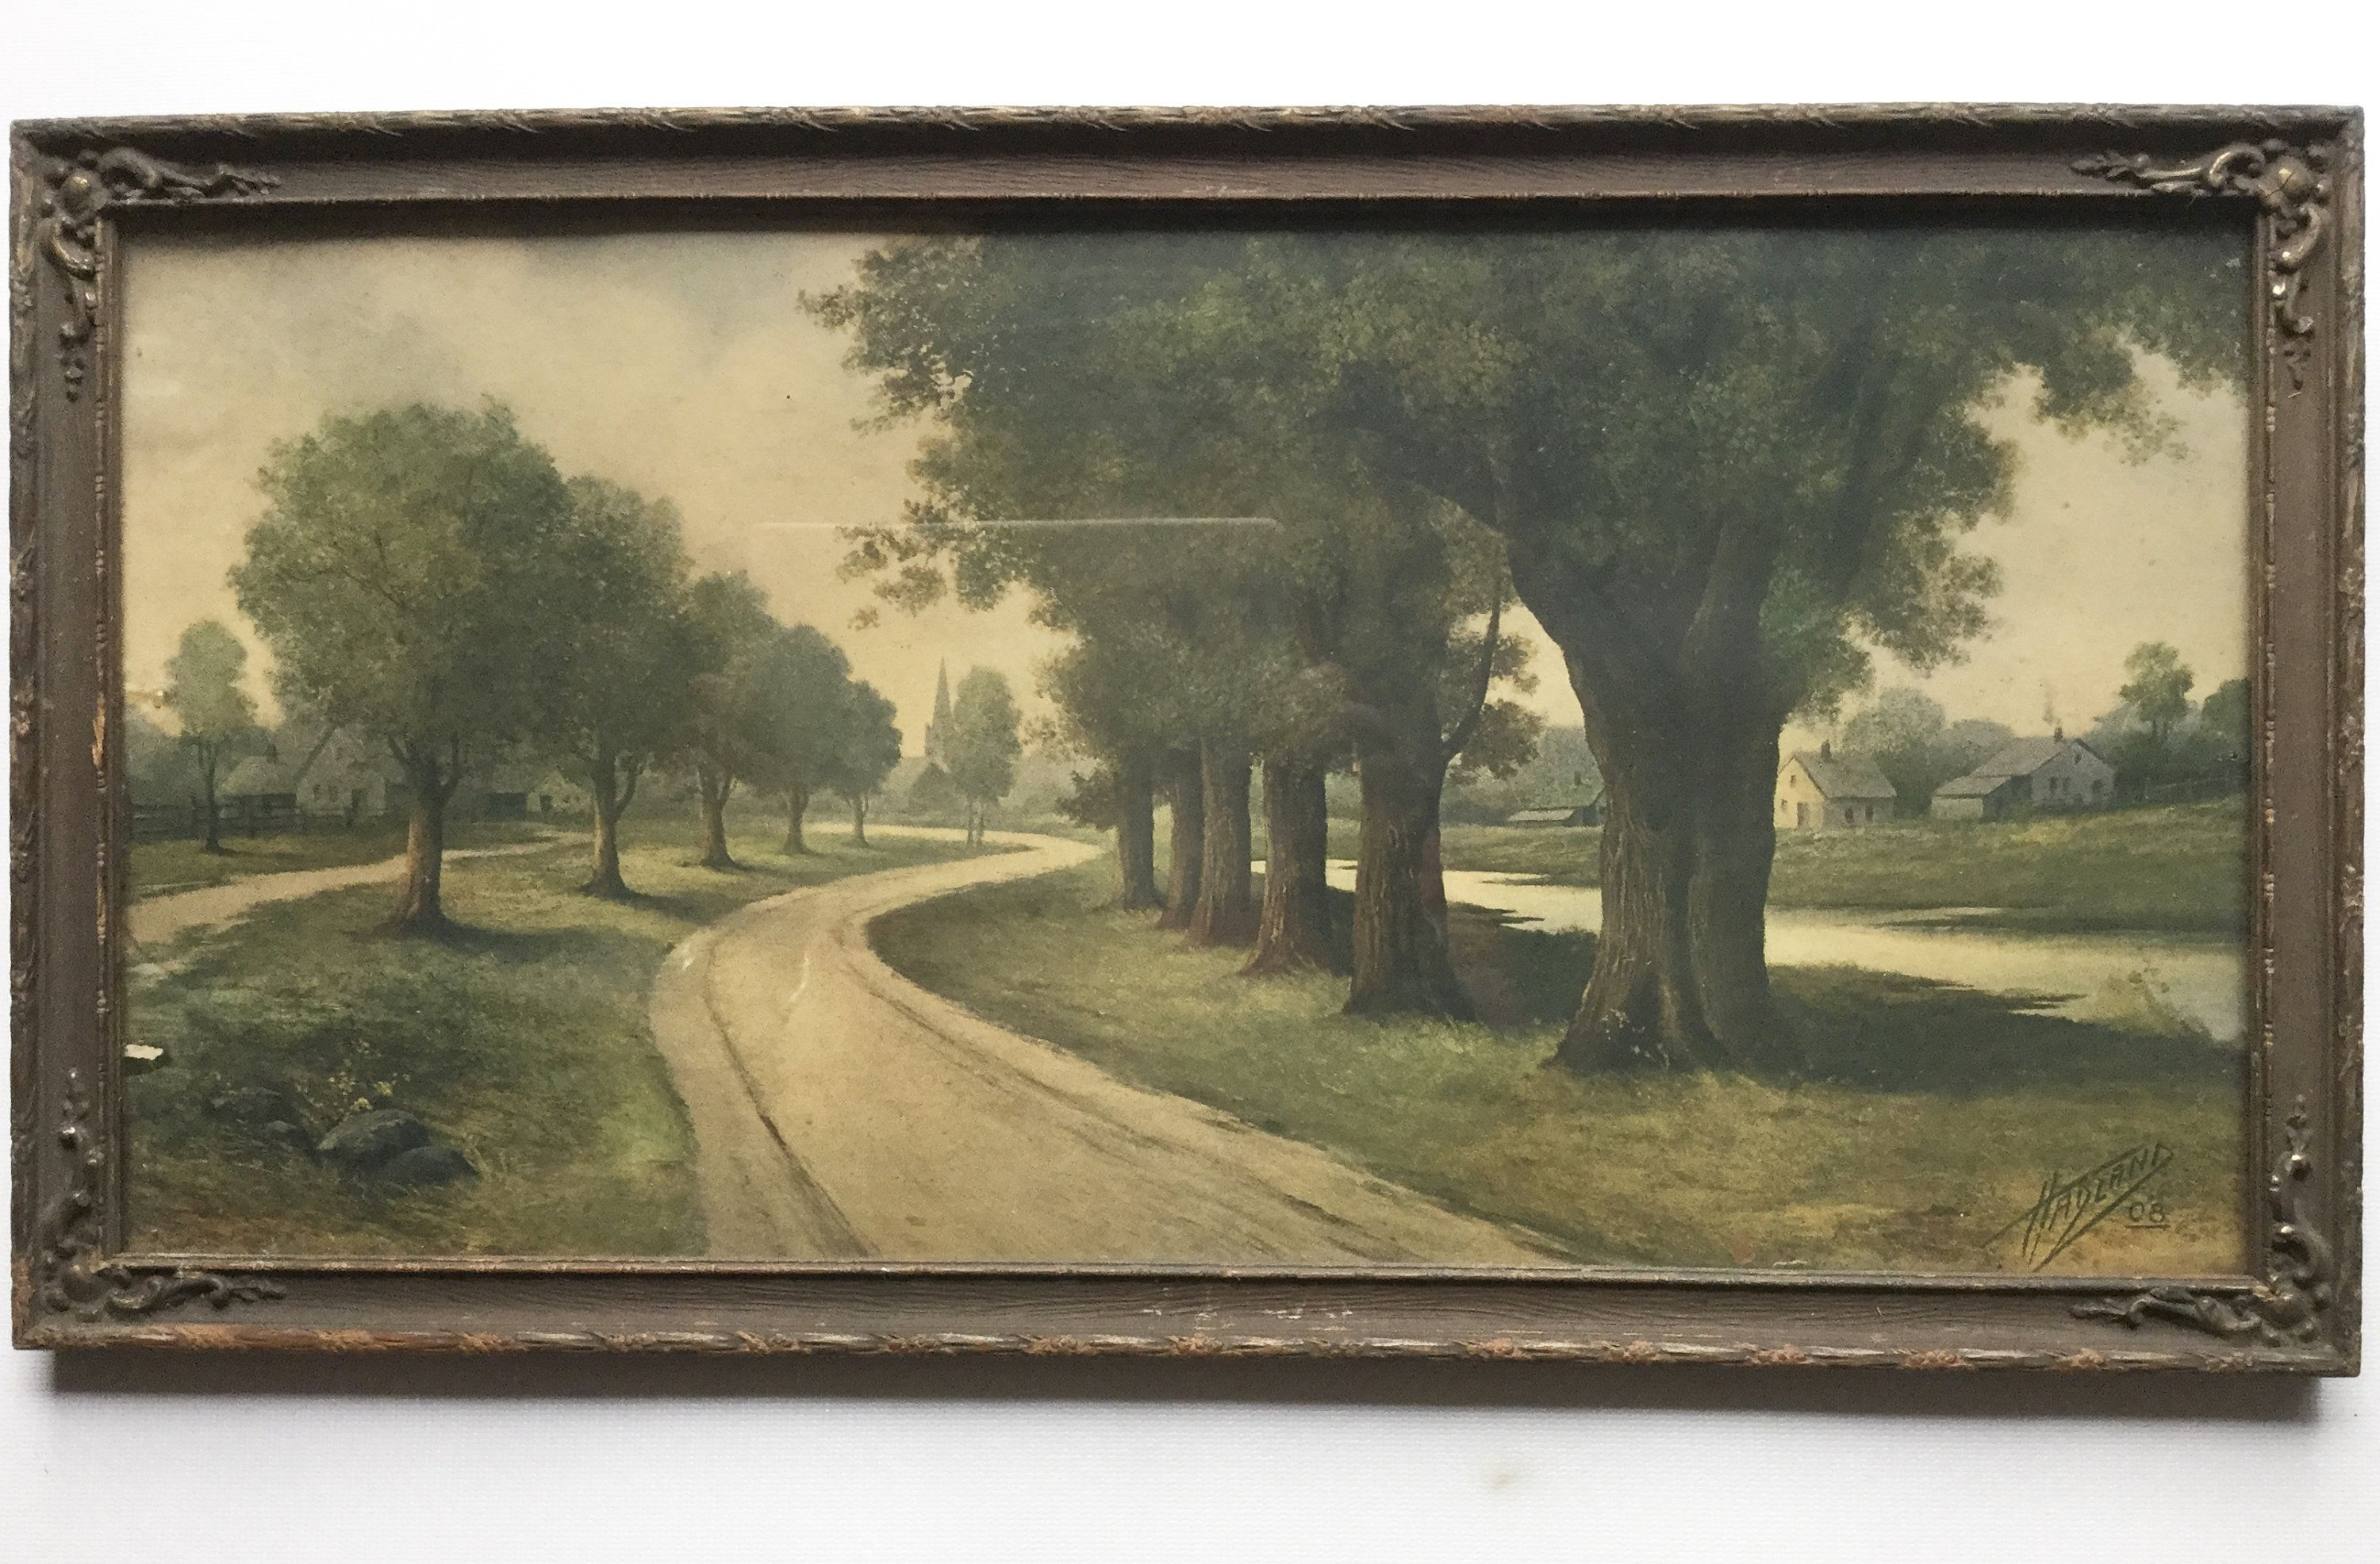 Antique Framed Art Print Signed Hadland 08 Tree Lined Road Country